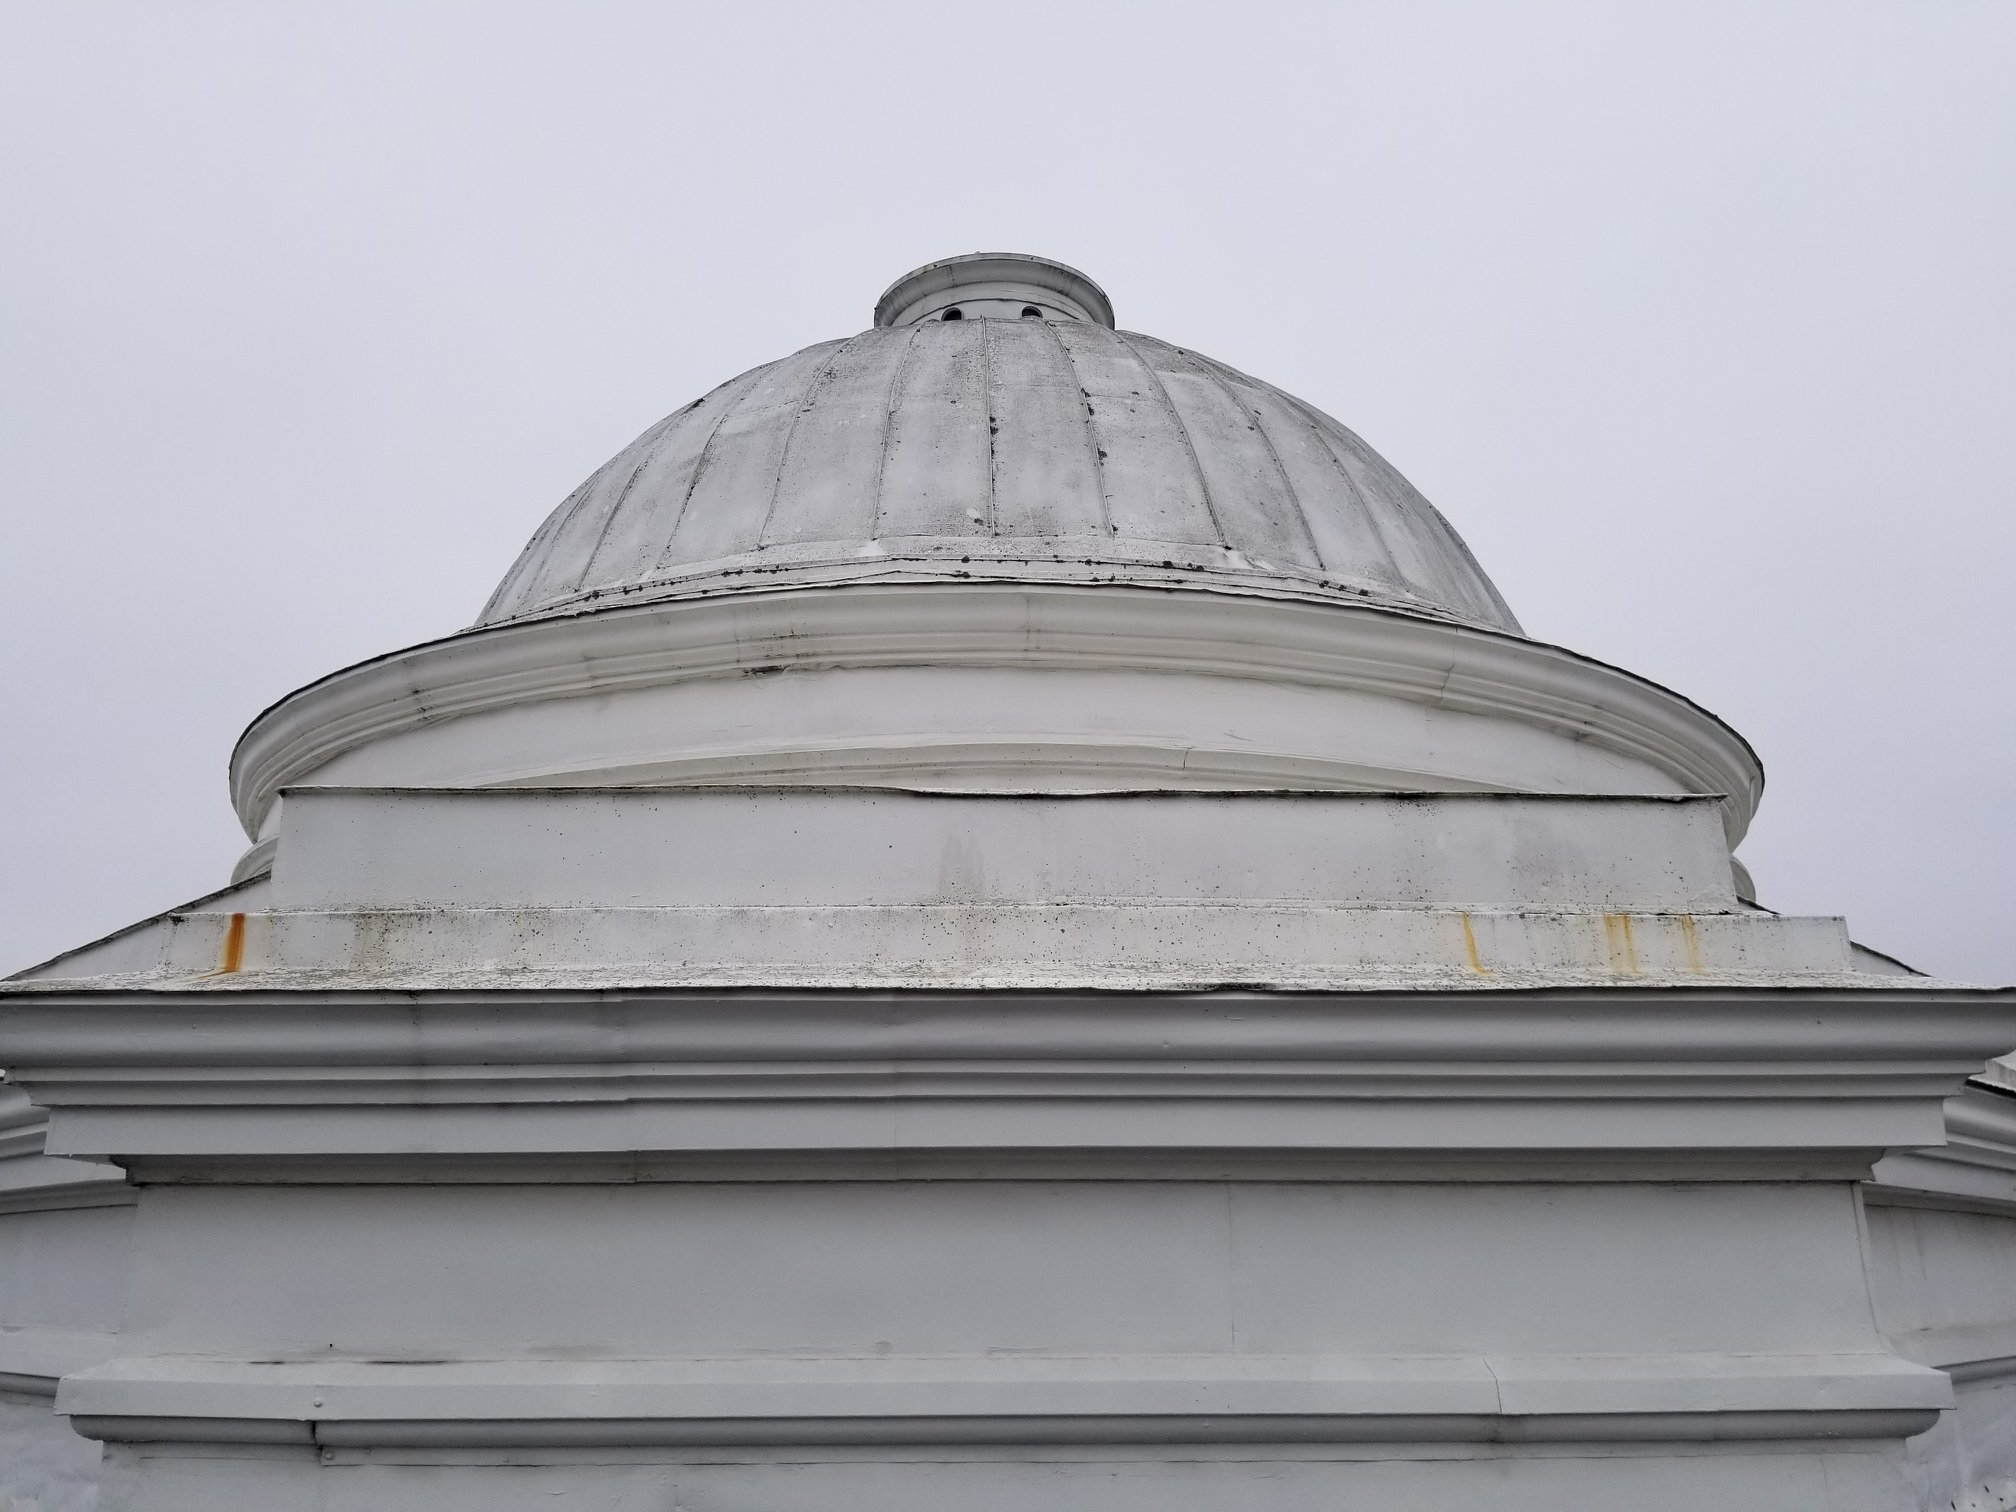 the famous old building's well-known dome was in dire need of cleaning and repair